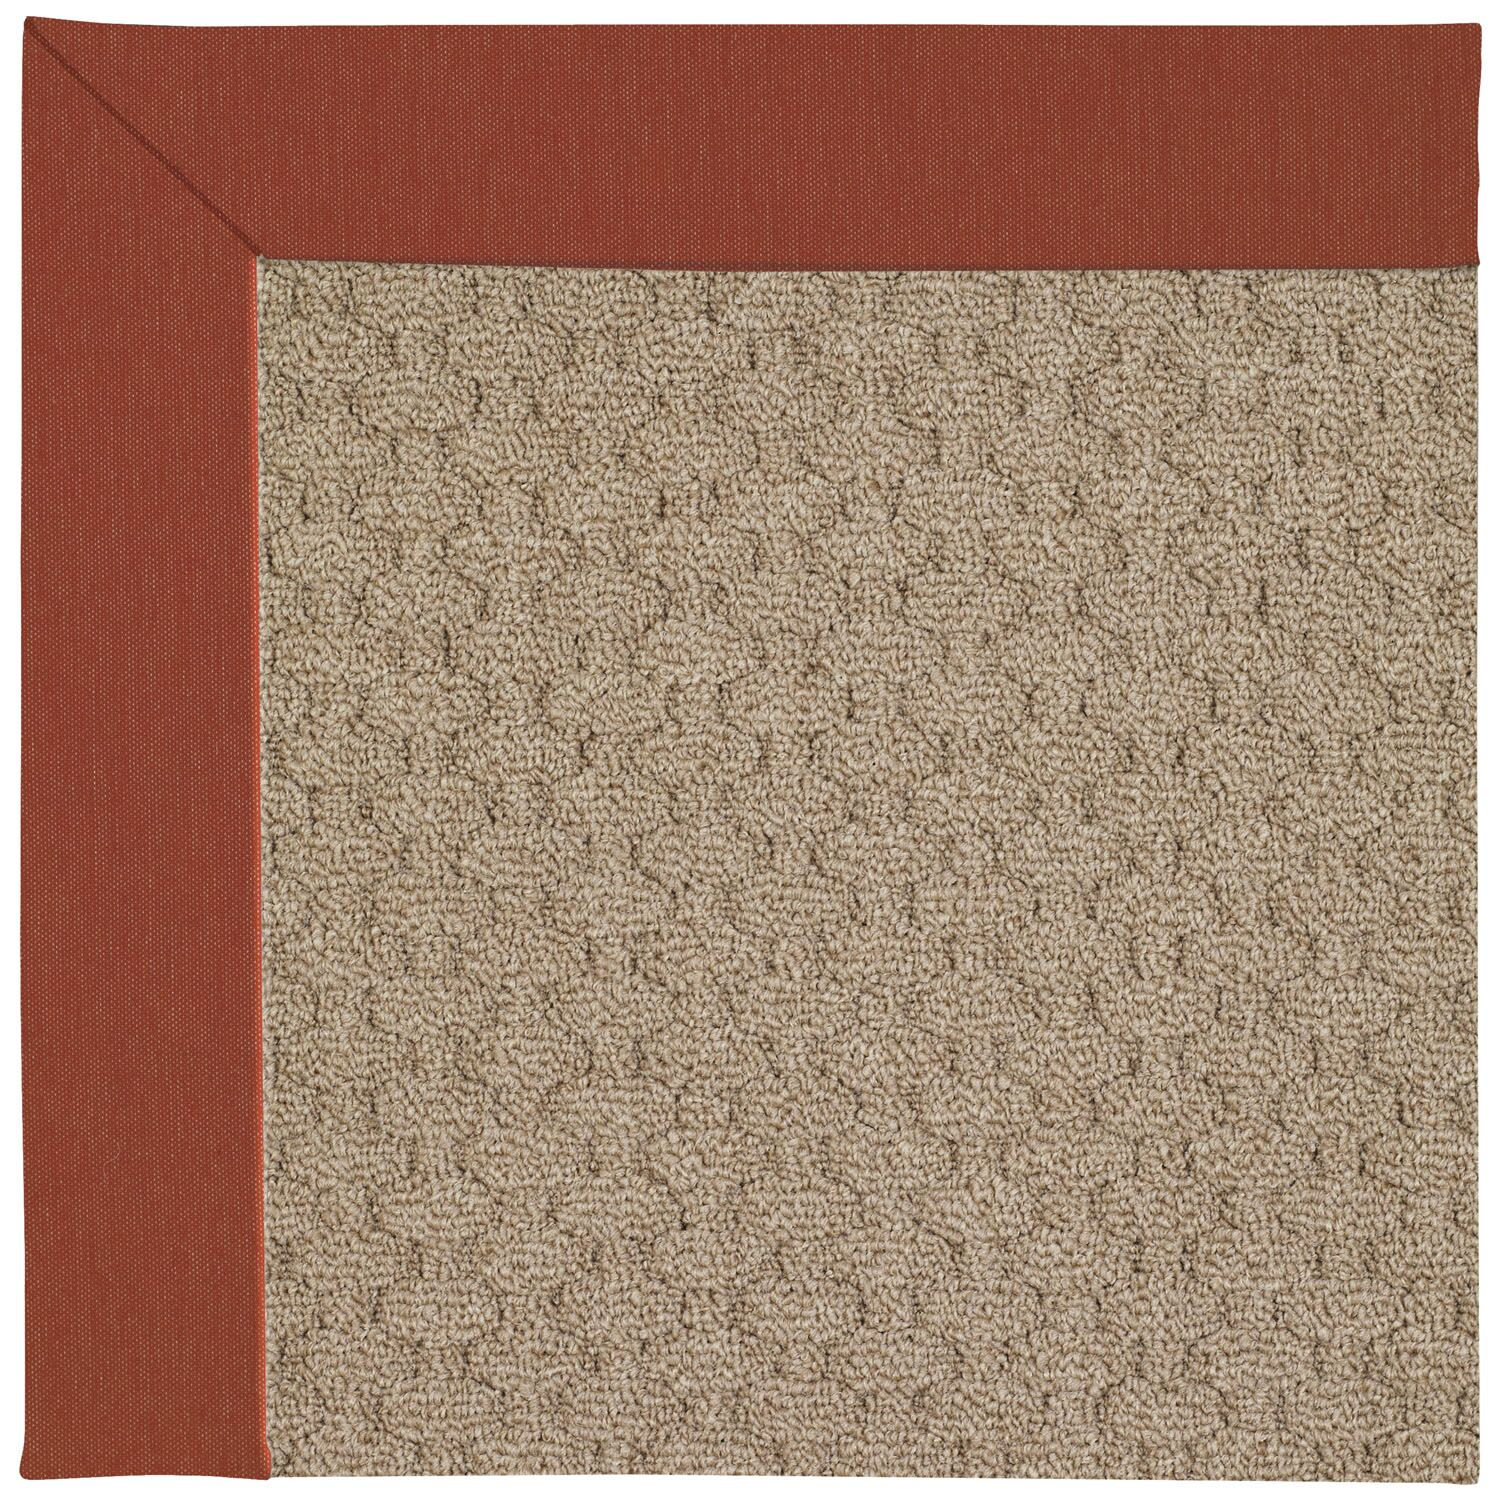 Lisle Machine Tufted Persimmon/Brown Indoor/Outdoor Area Rug Rug Size: Rectangle 3' x 5'